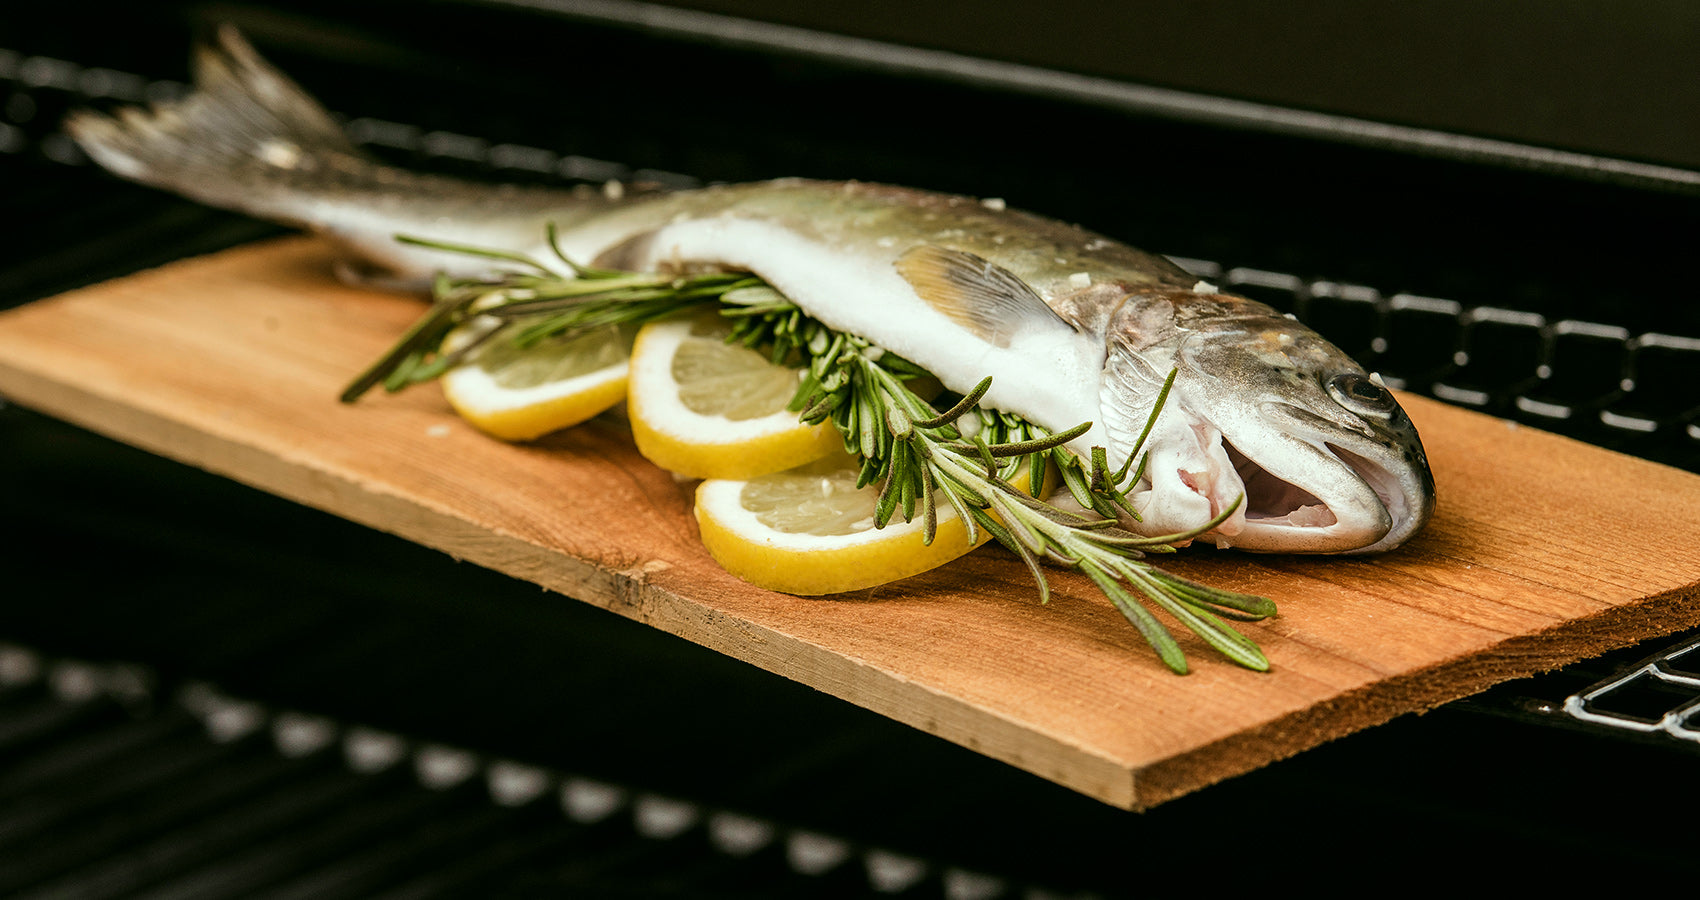 grilled trout usda temp recommendations